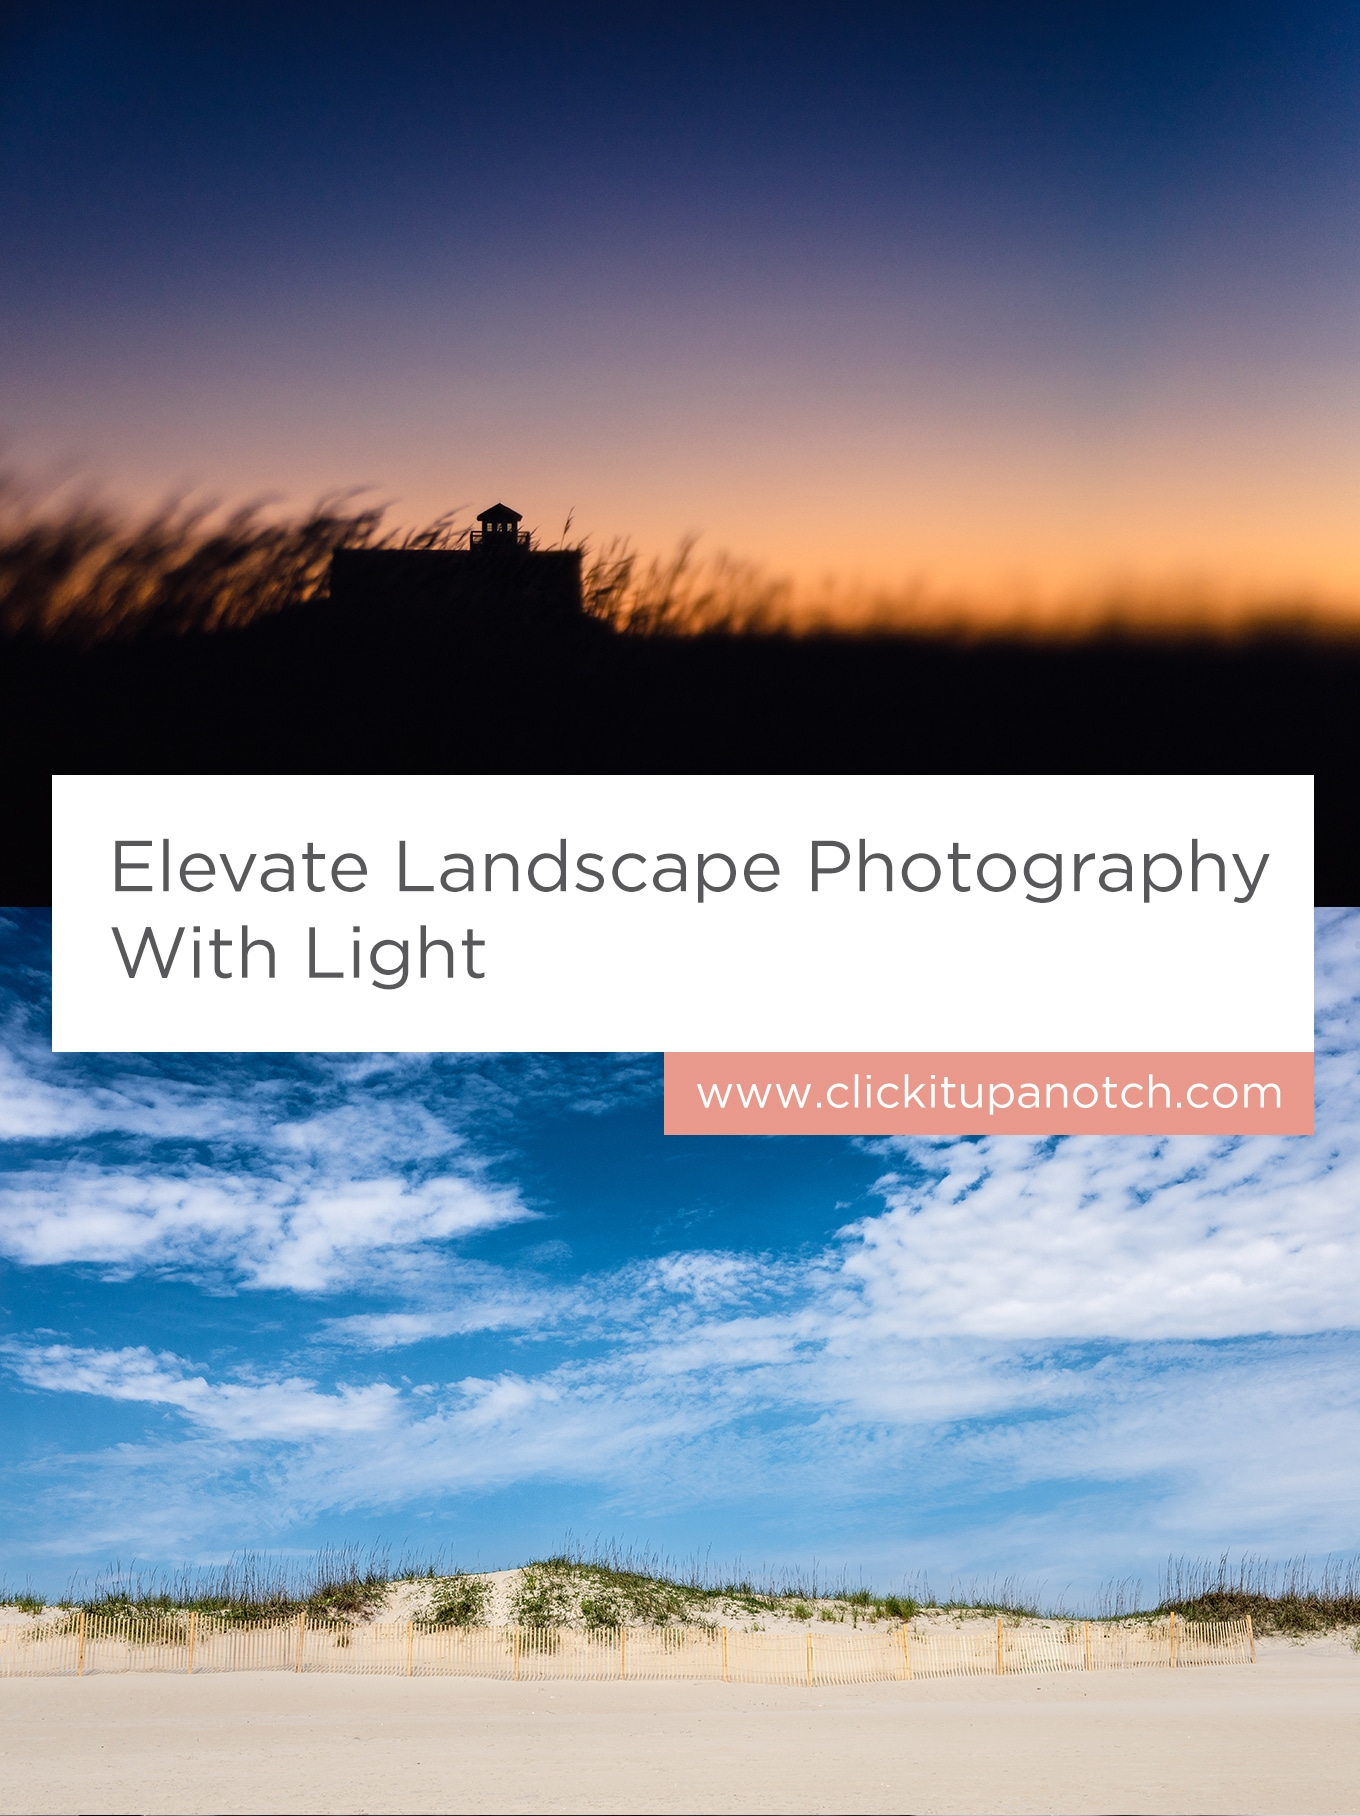 """I love her suggestions for landscape photography! Makes me less afraid of not shooting during the golden hour. Read - """"Elevate Landscape Photography With Light"""""""